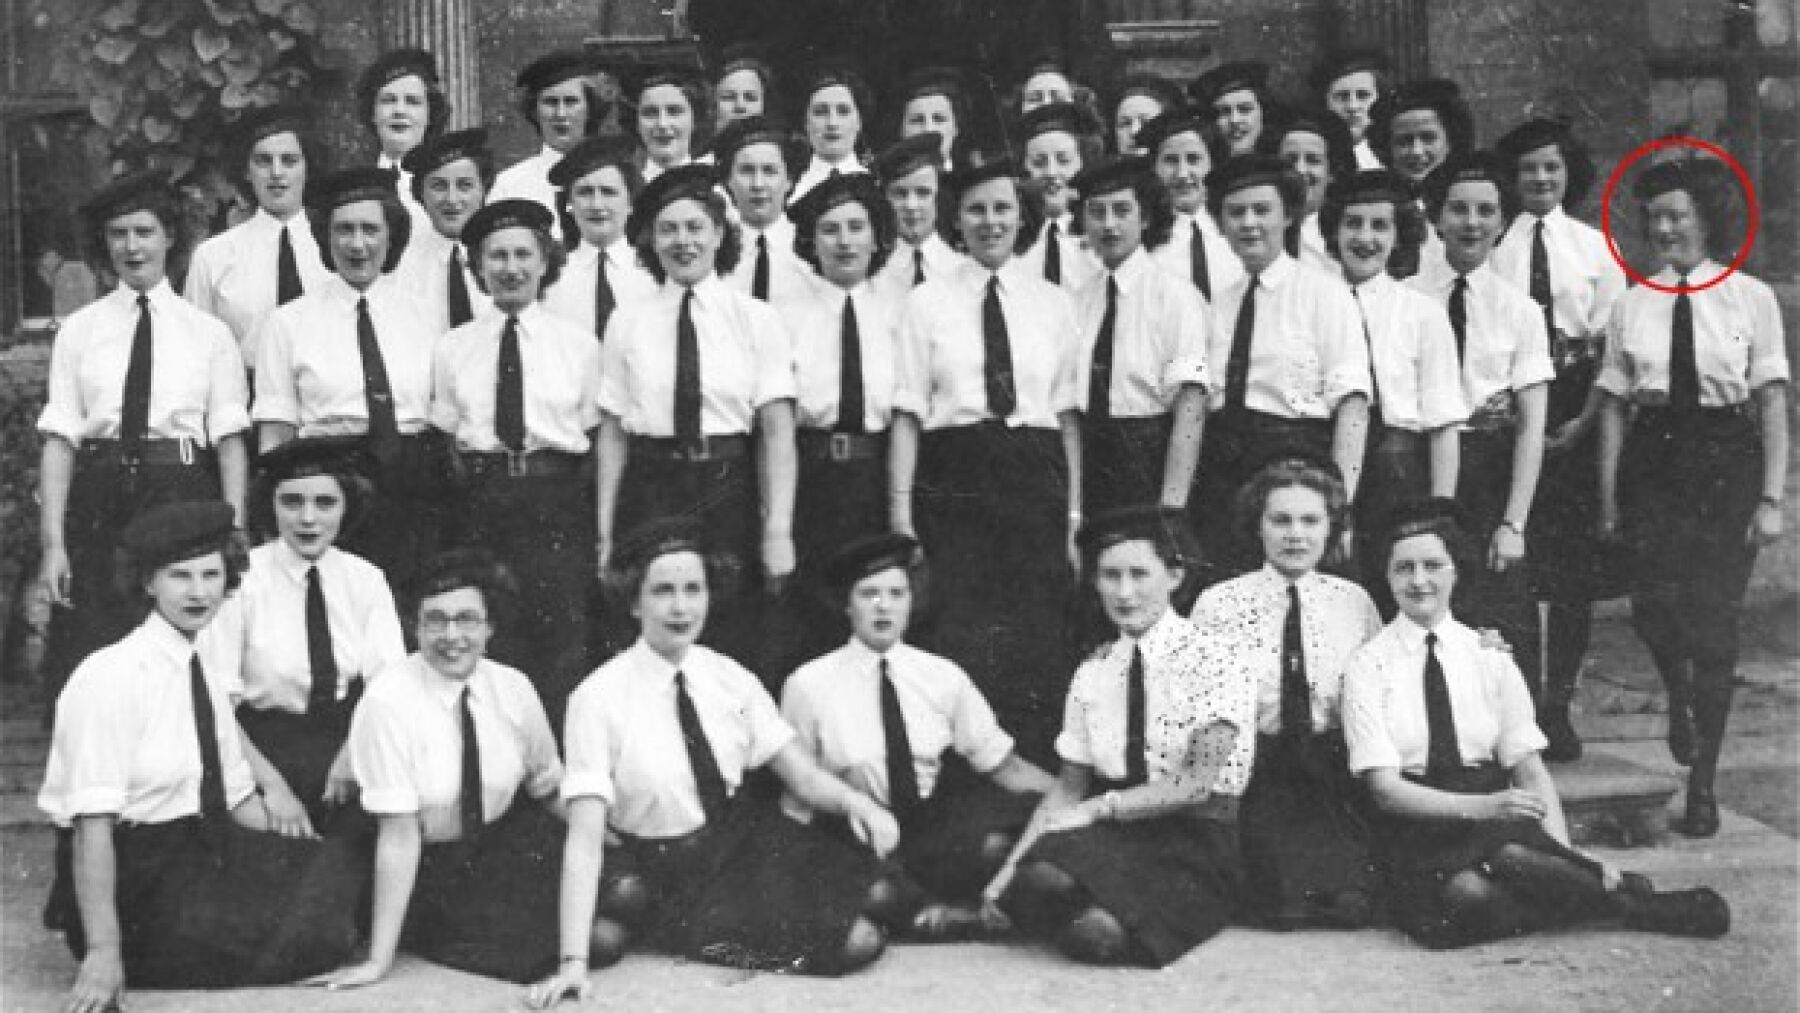 Joanna and her fellow codebreakers at Bletchley Park, 1945. Photo: Geoff Robinson